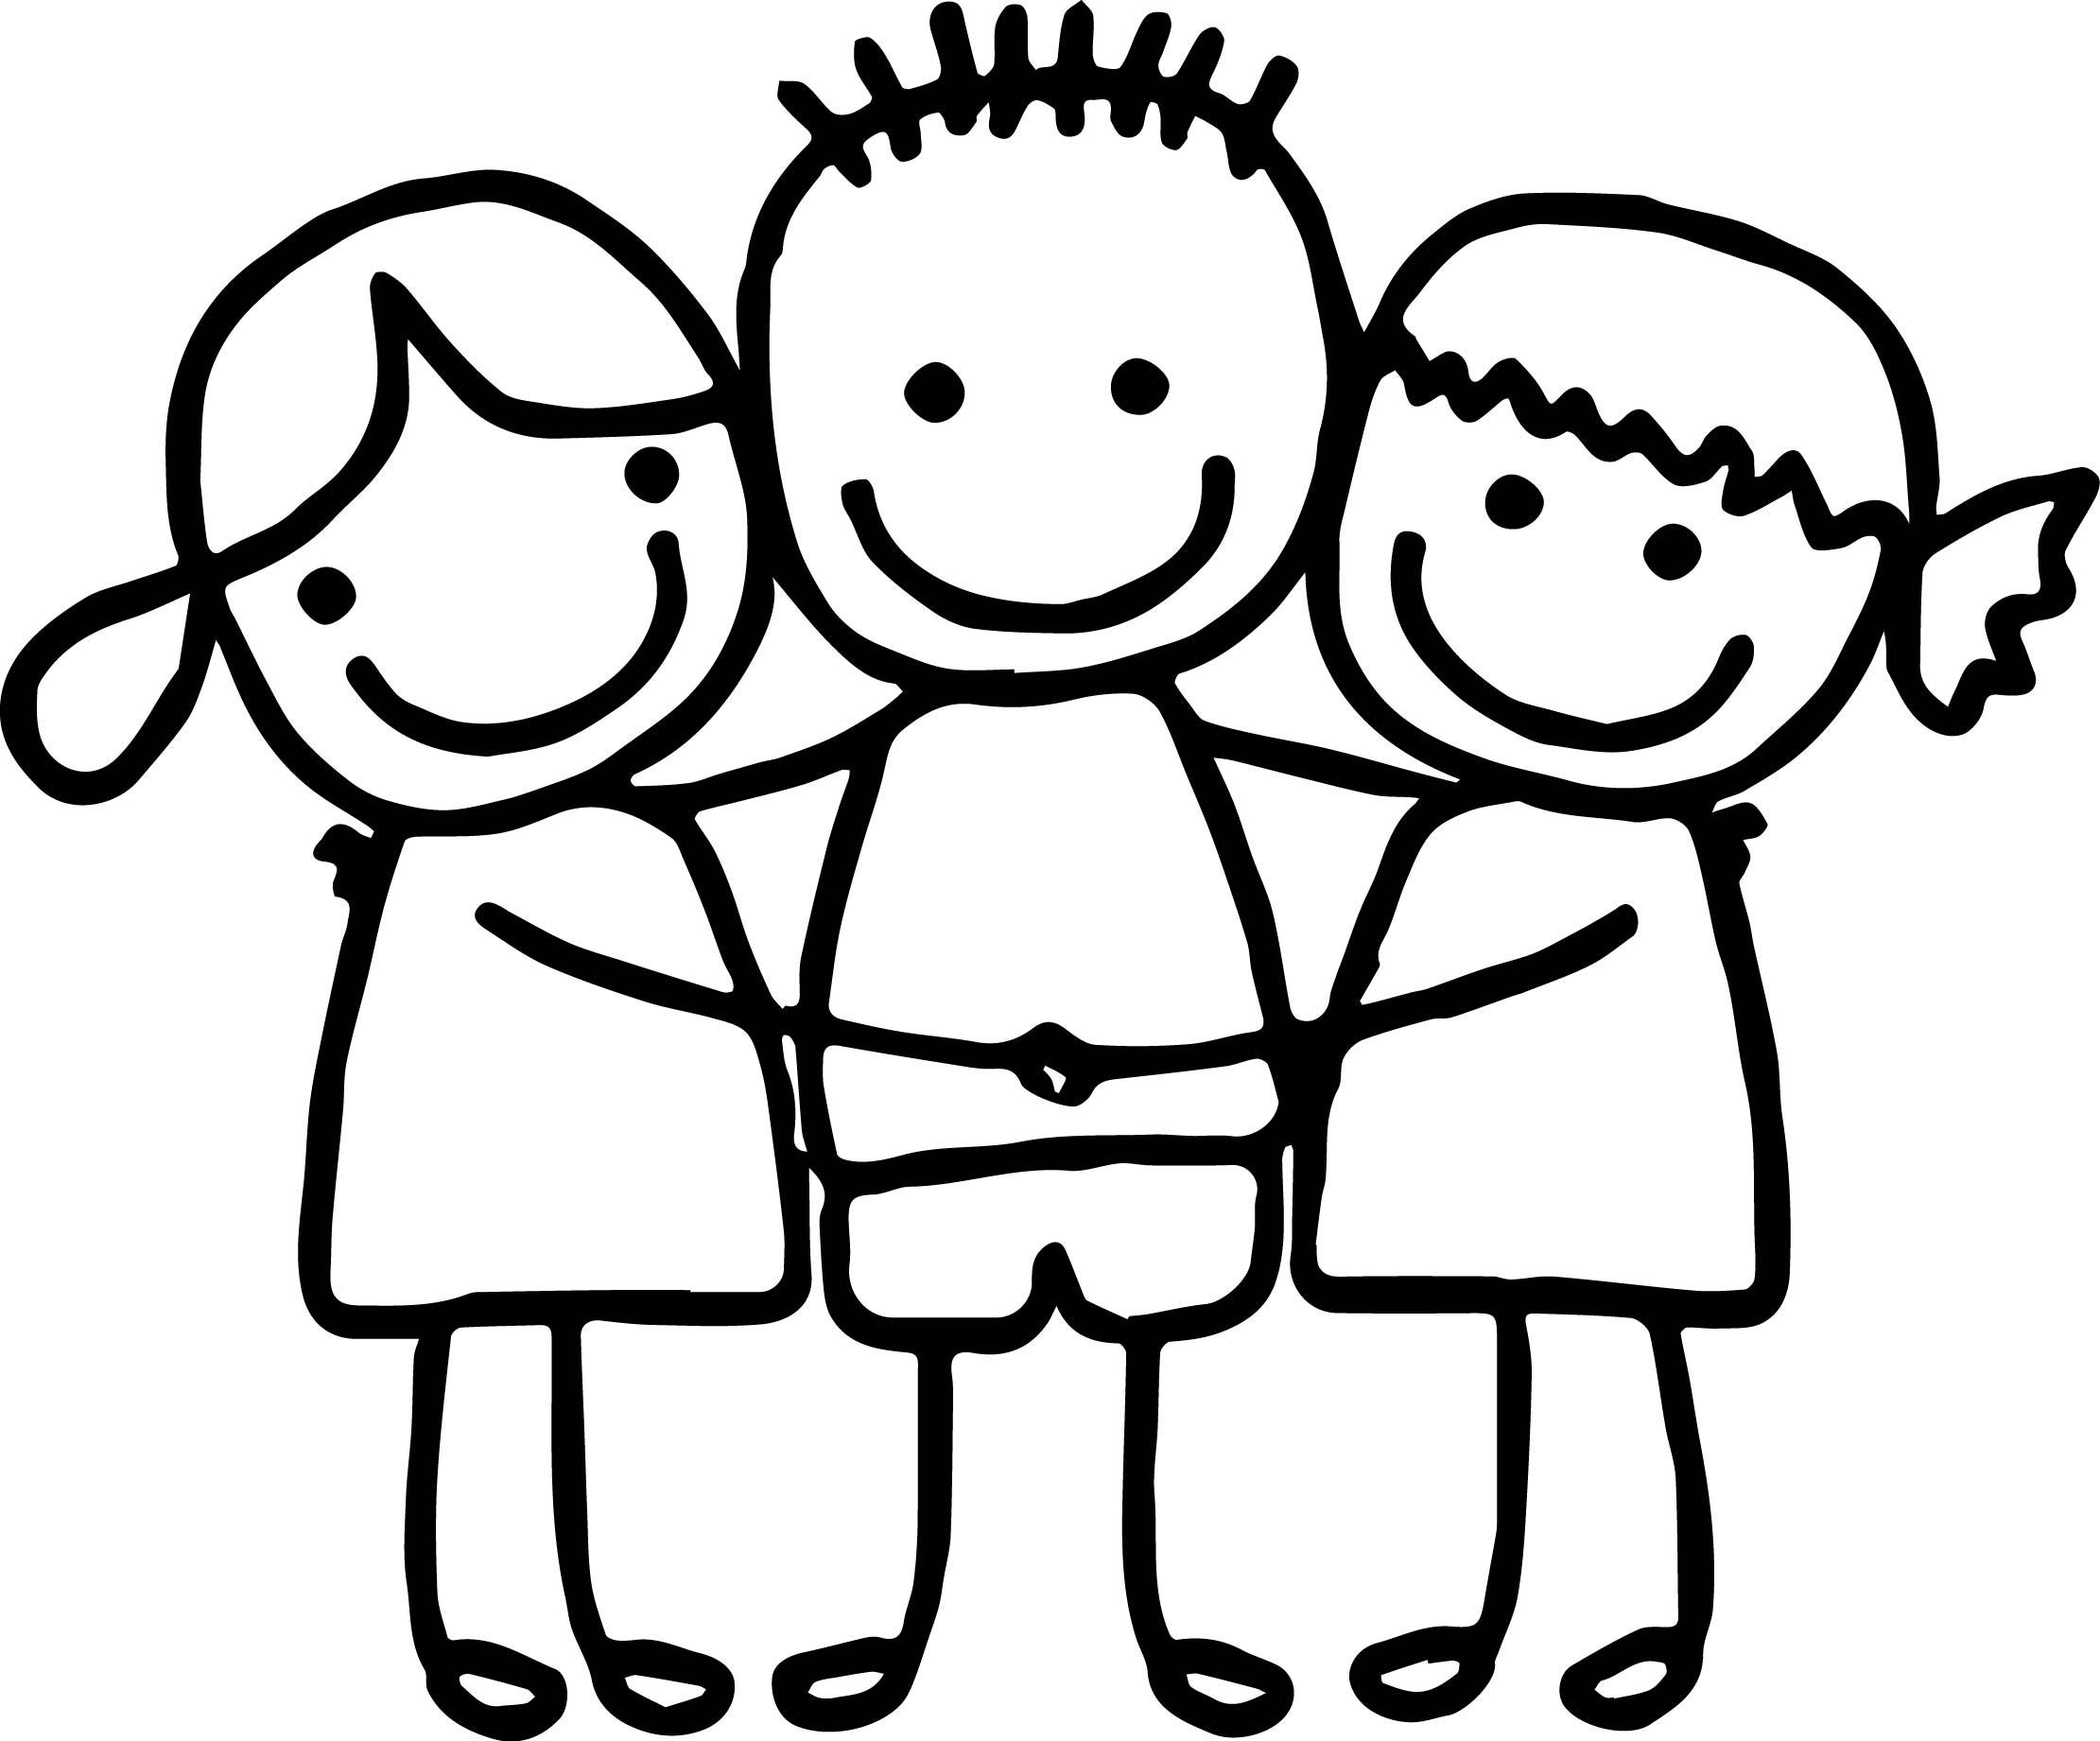 preschool coloring pages friends | Best Friends Coloring Pages - Best Coloring Pages For Kids